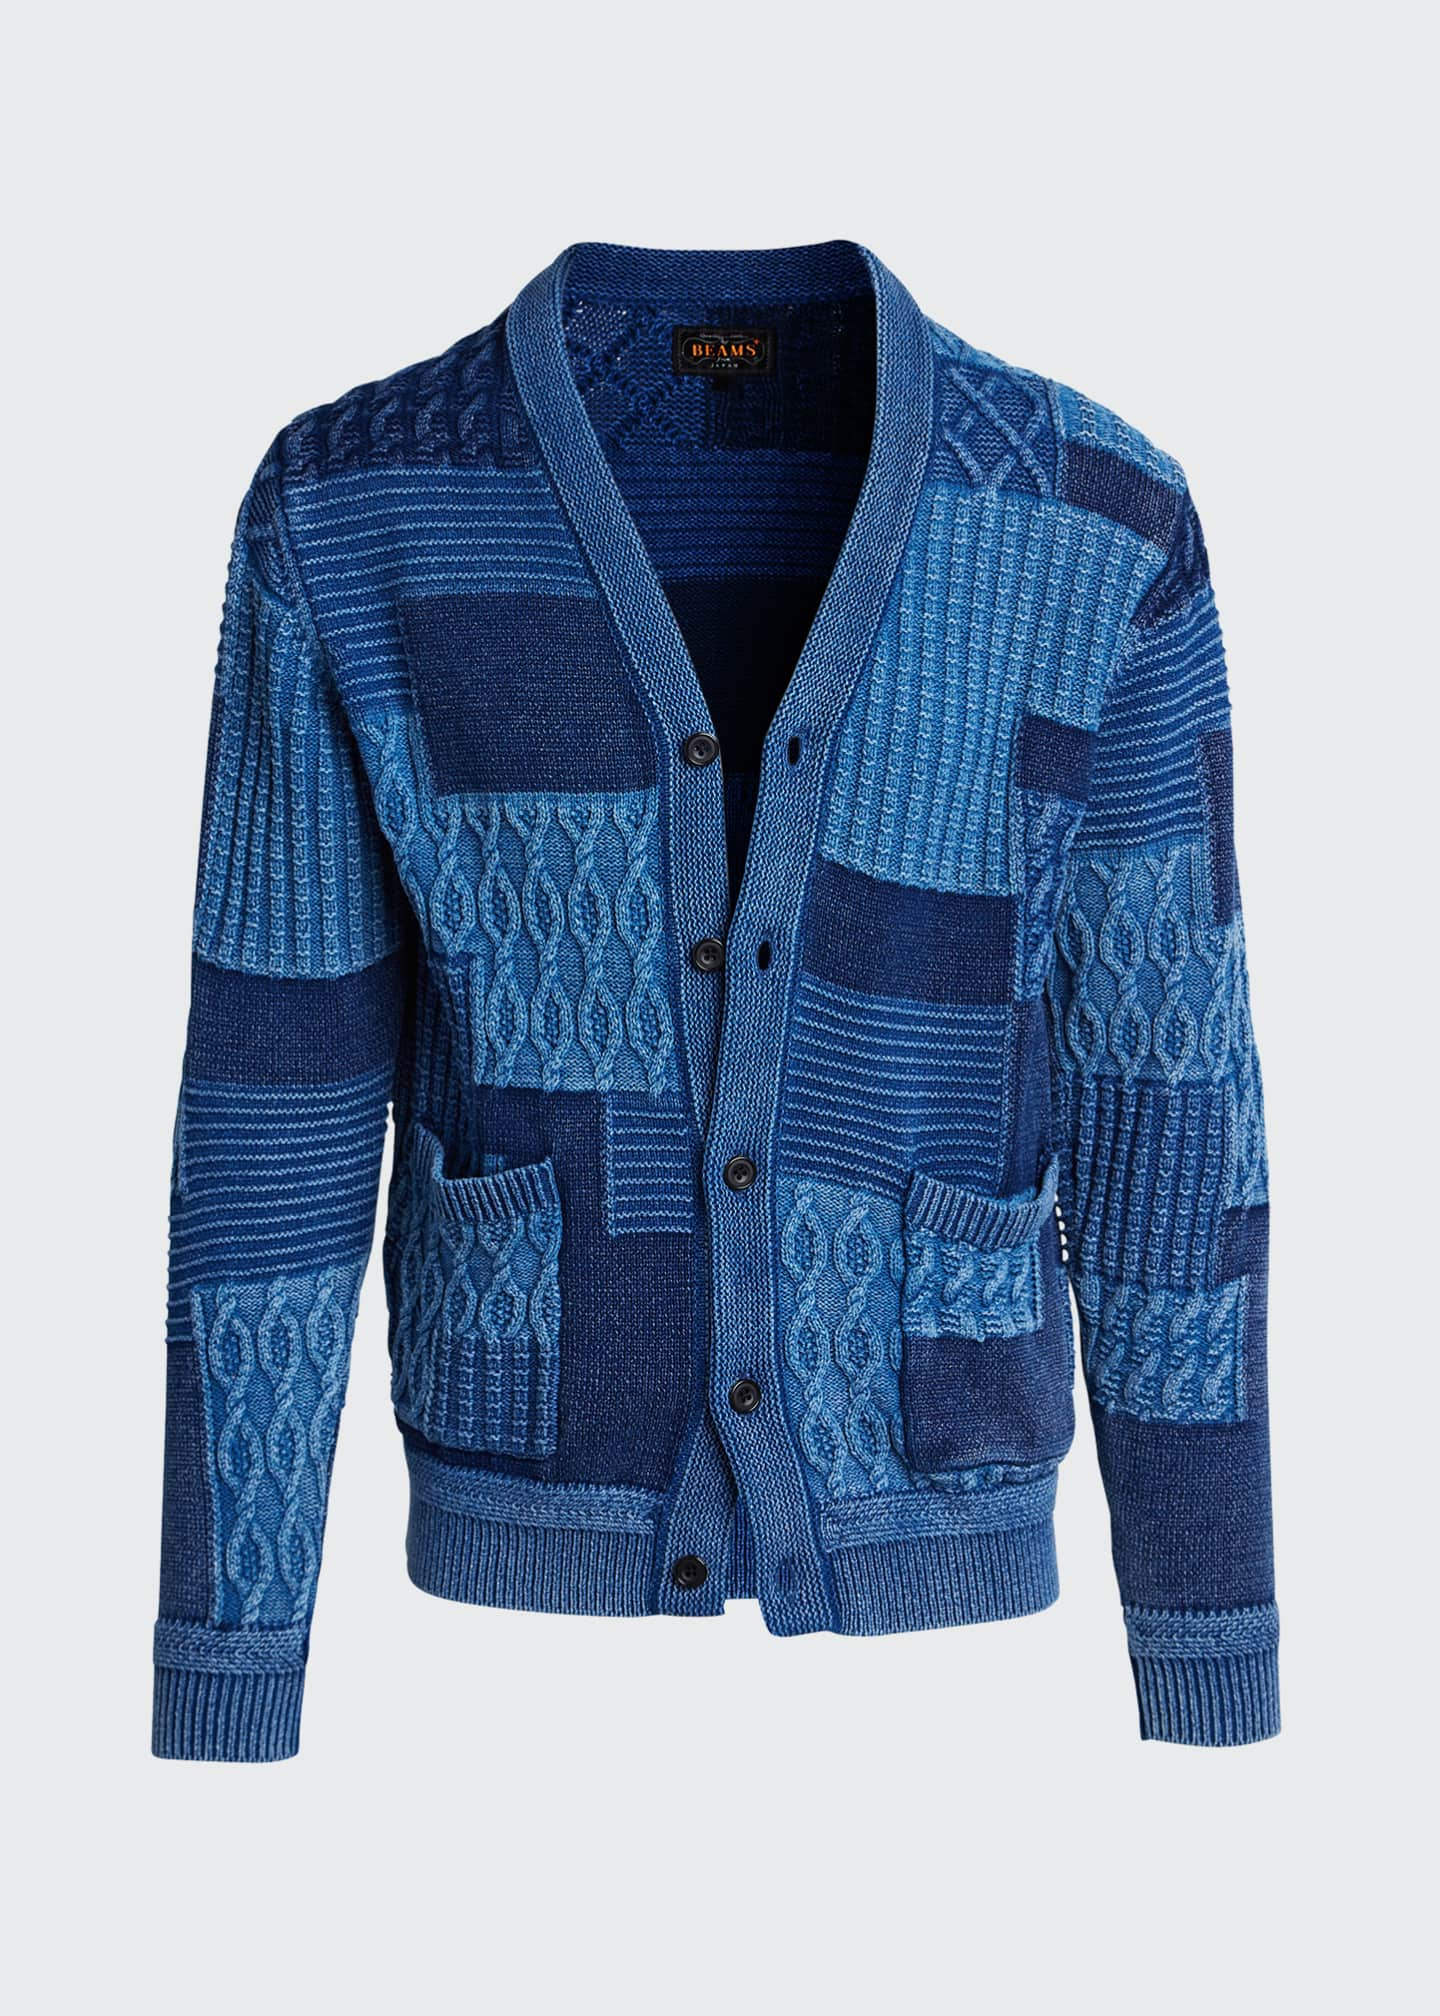 Image 5 of 5: Men's Patchwork Cable Cardigan Sweater